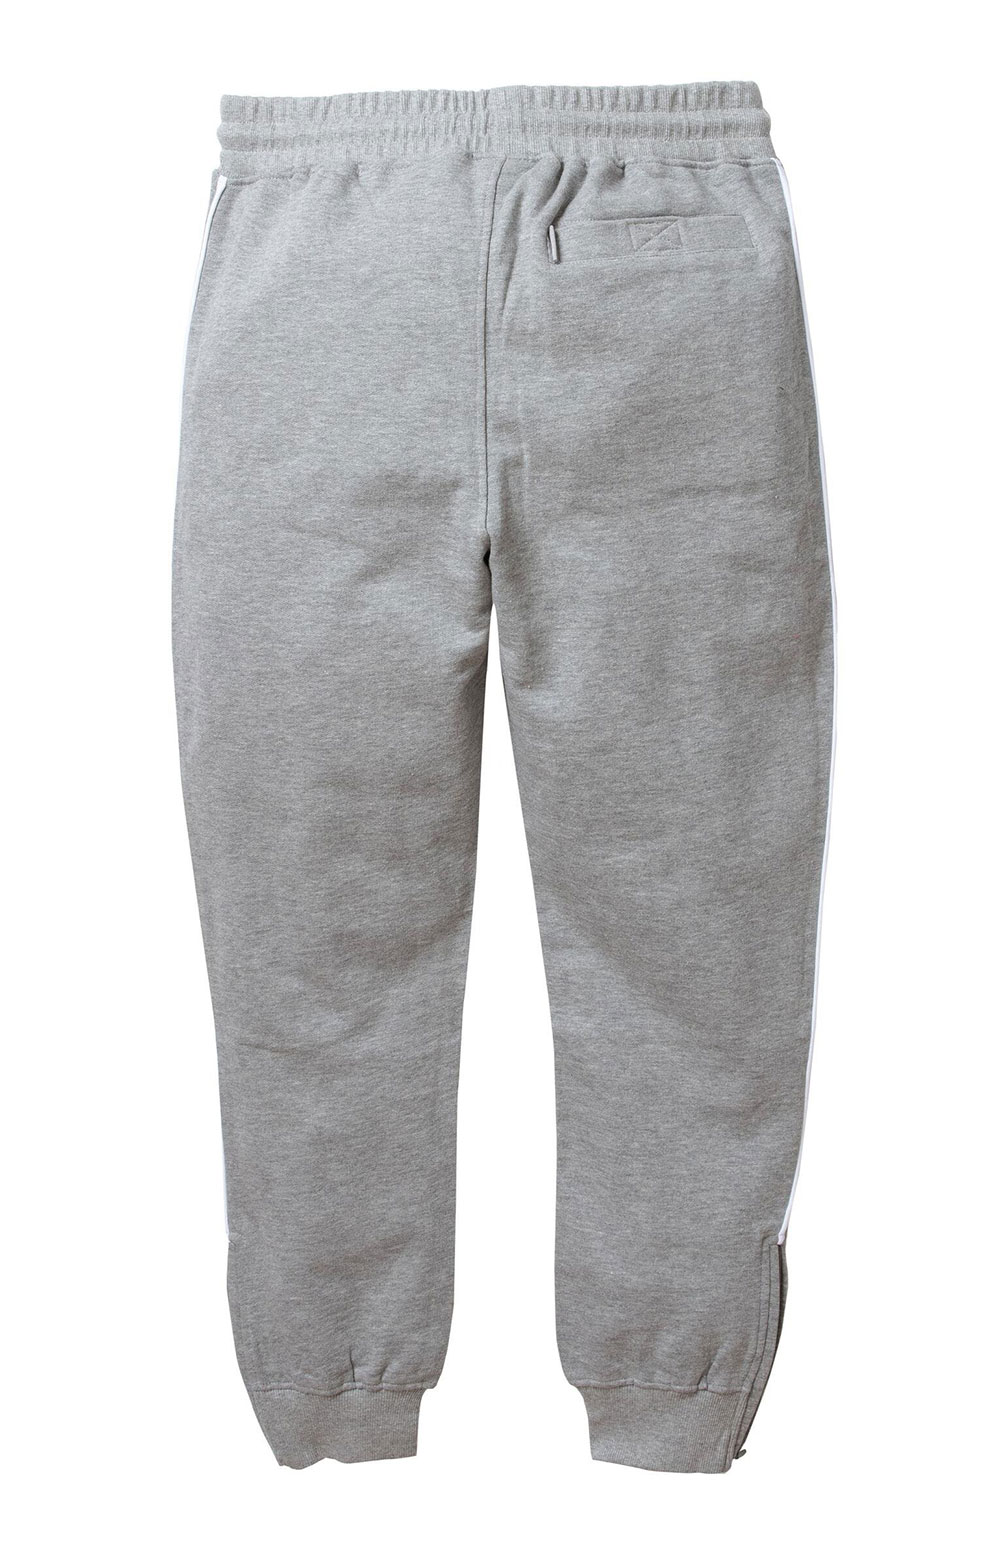 Piped Sweatpant - Heather Grey 3